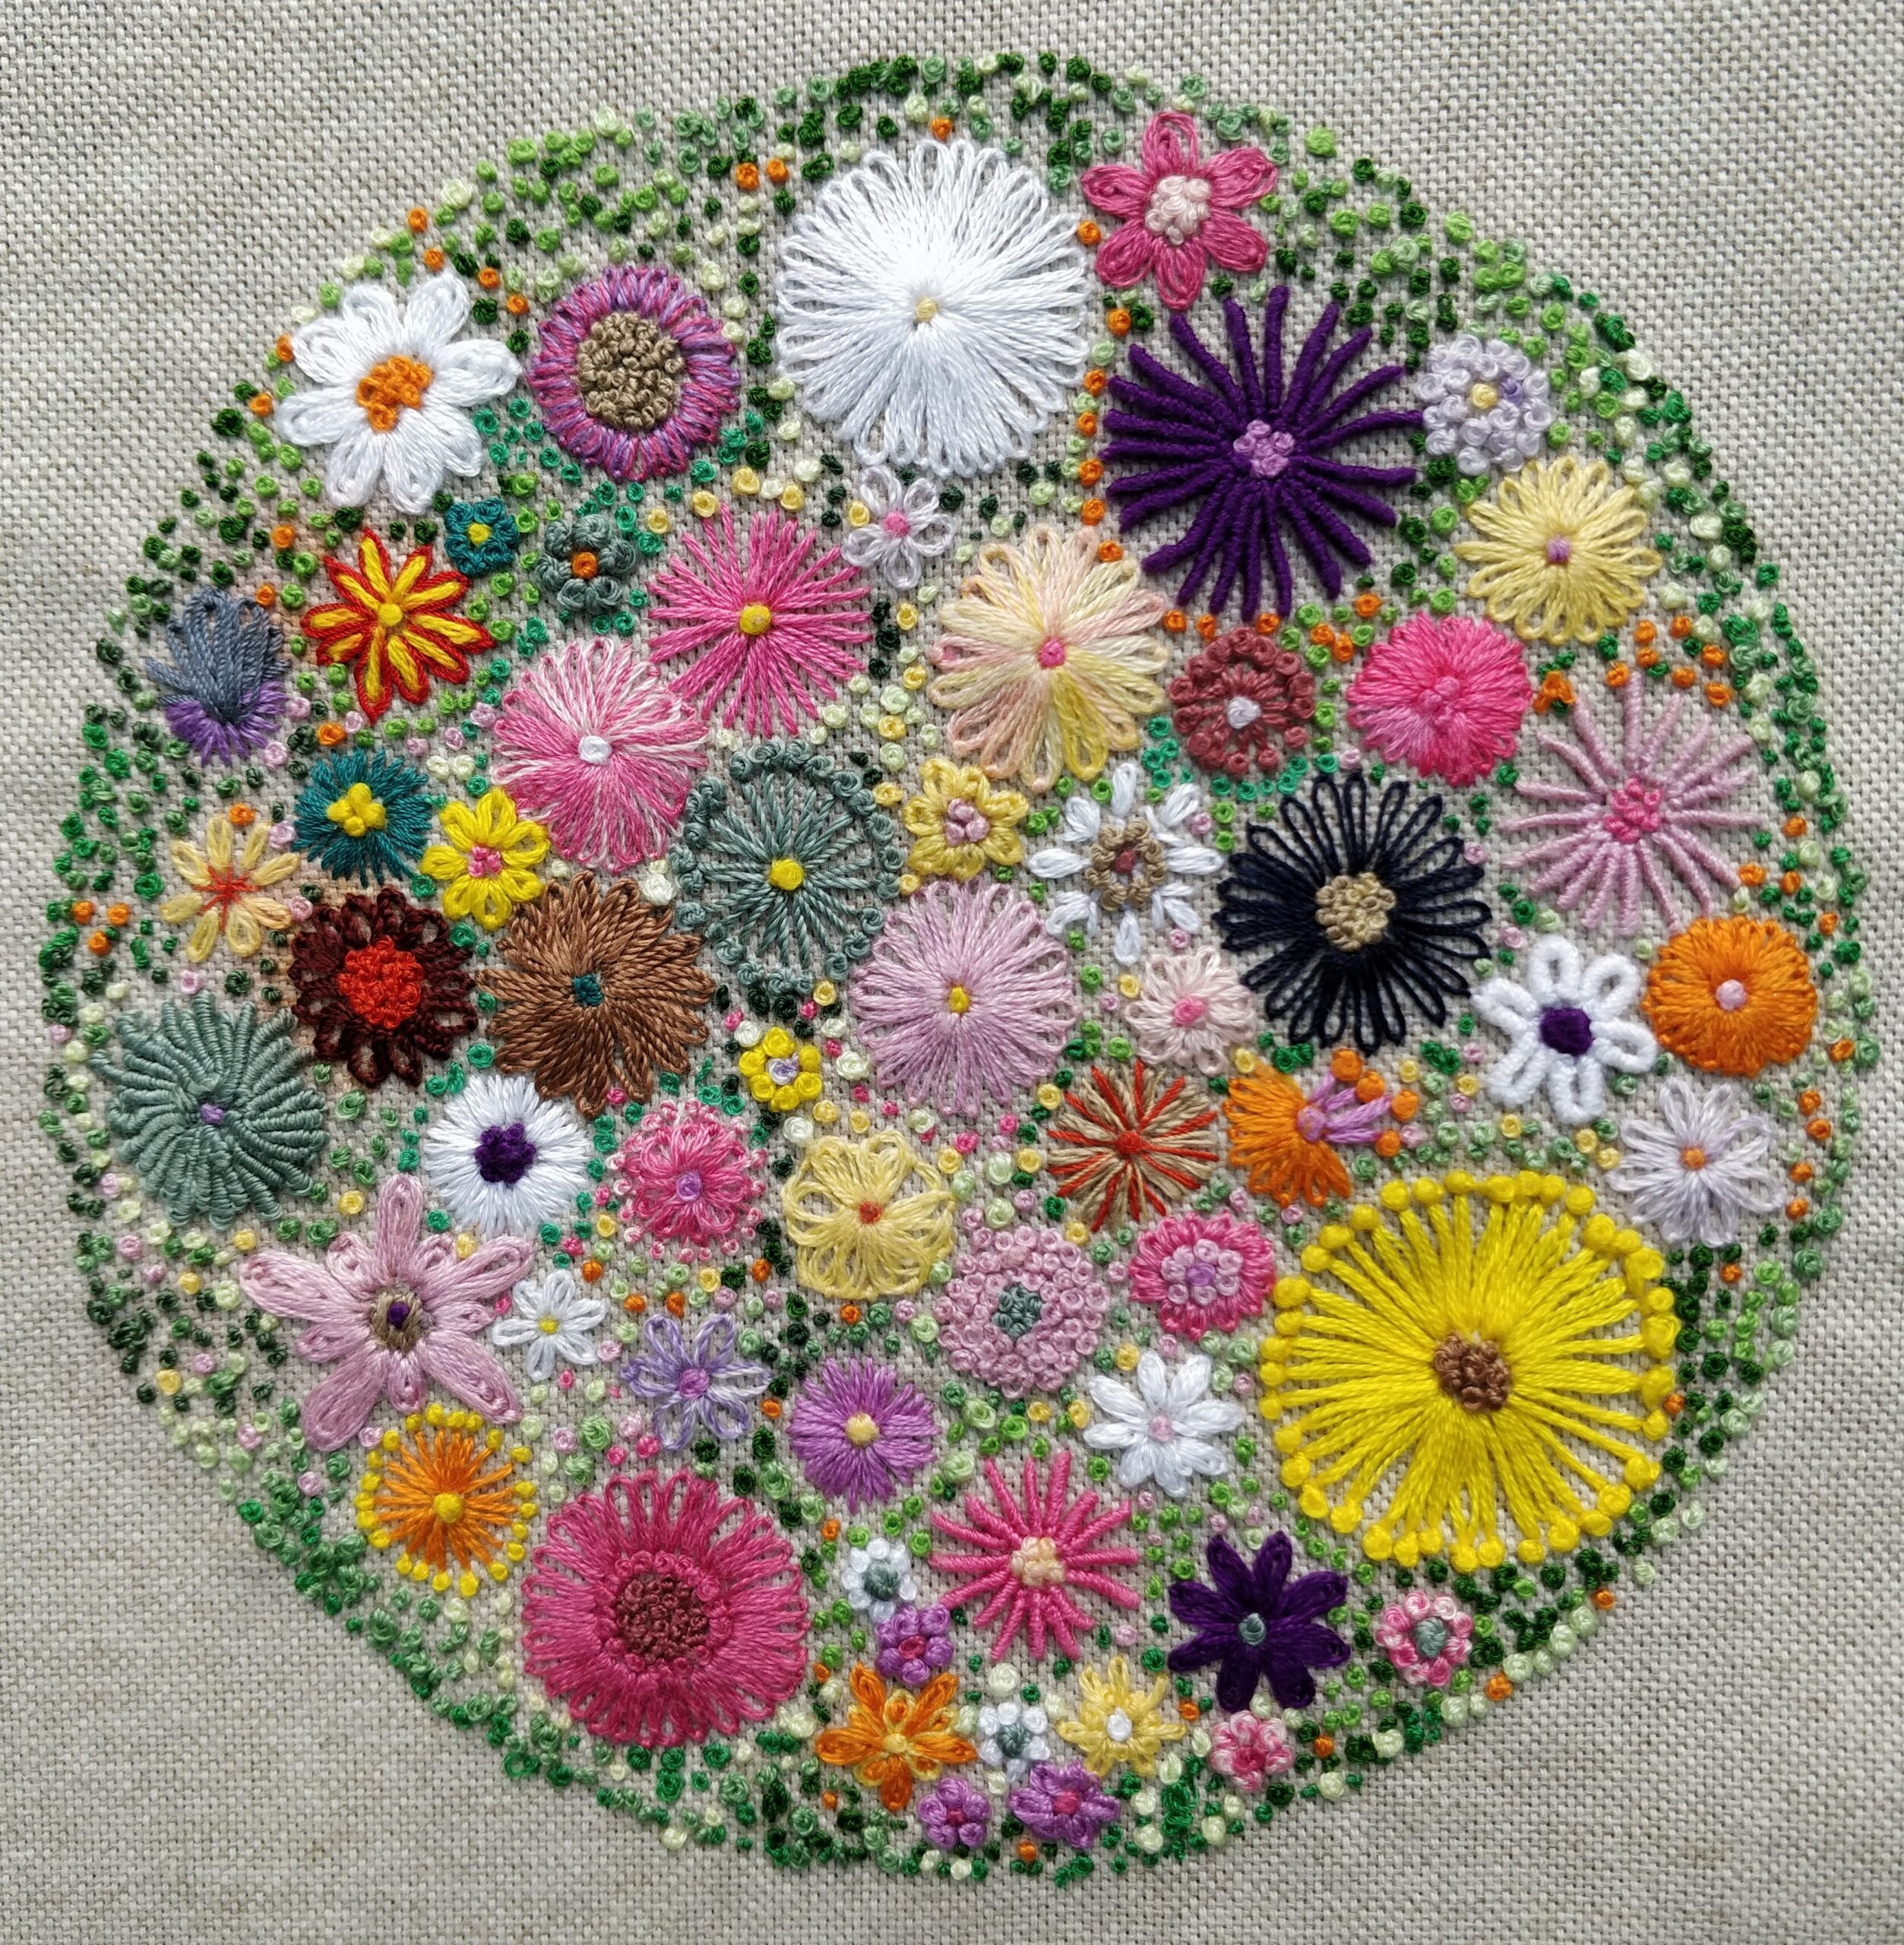 Colourful embroidery, multiple circles within one larger circle.